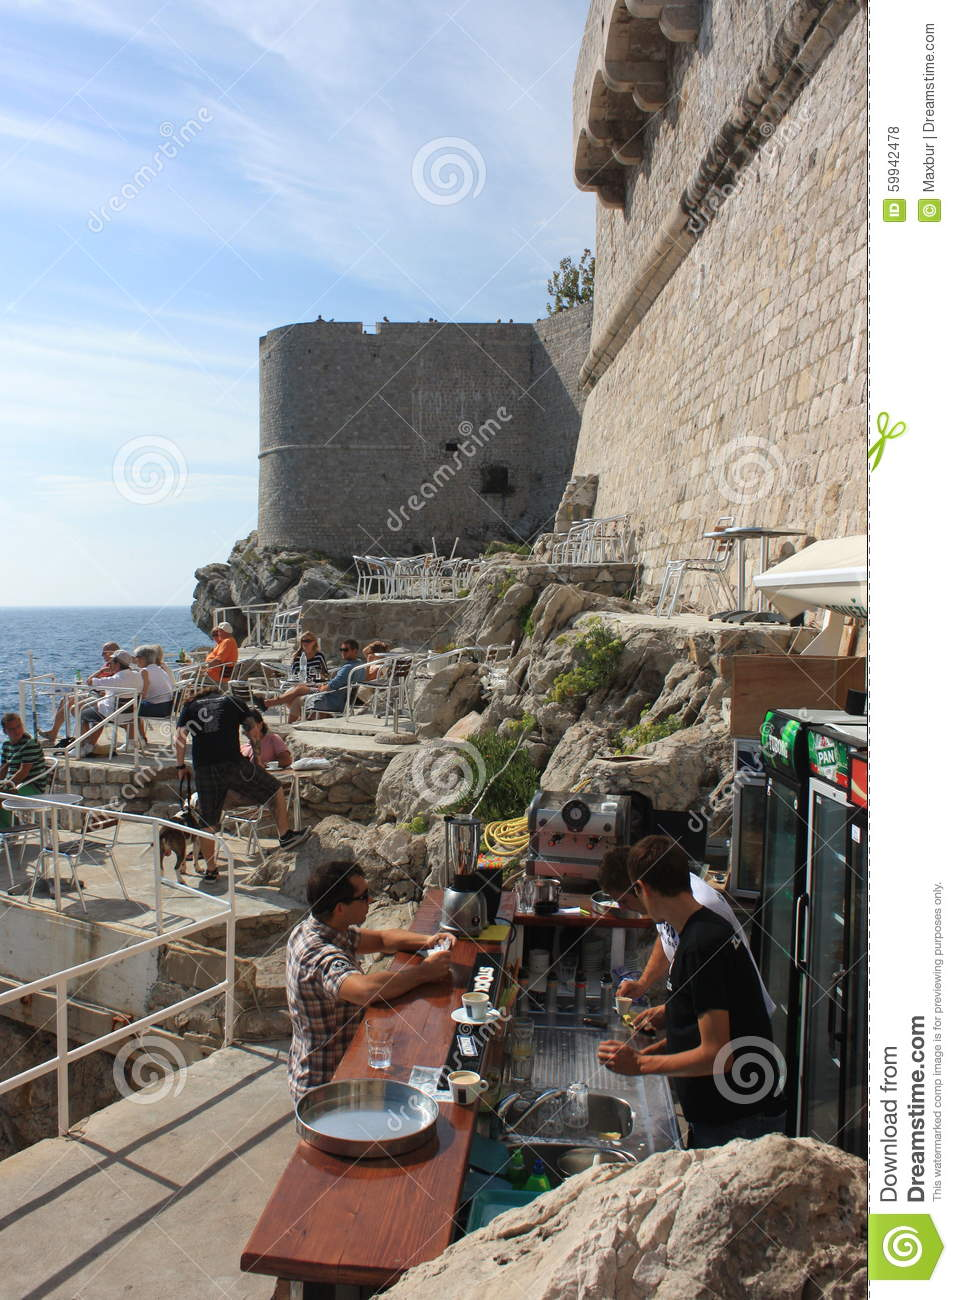 Dubrovnik S Oceanside Cafe And Bar Editorial Stock Photo Image